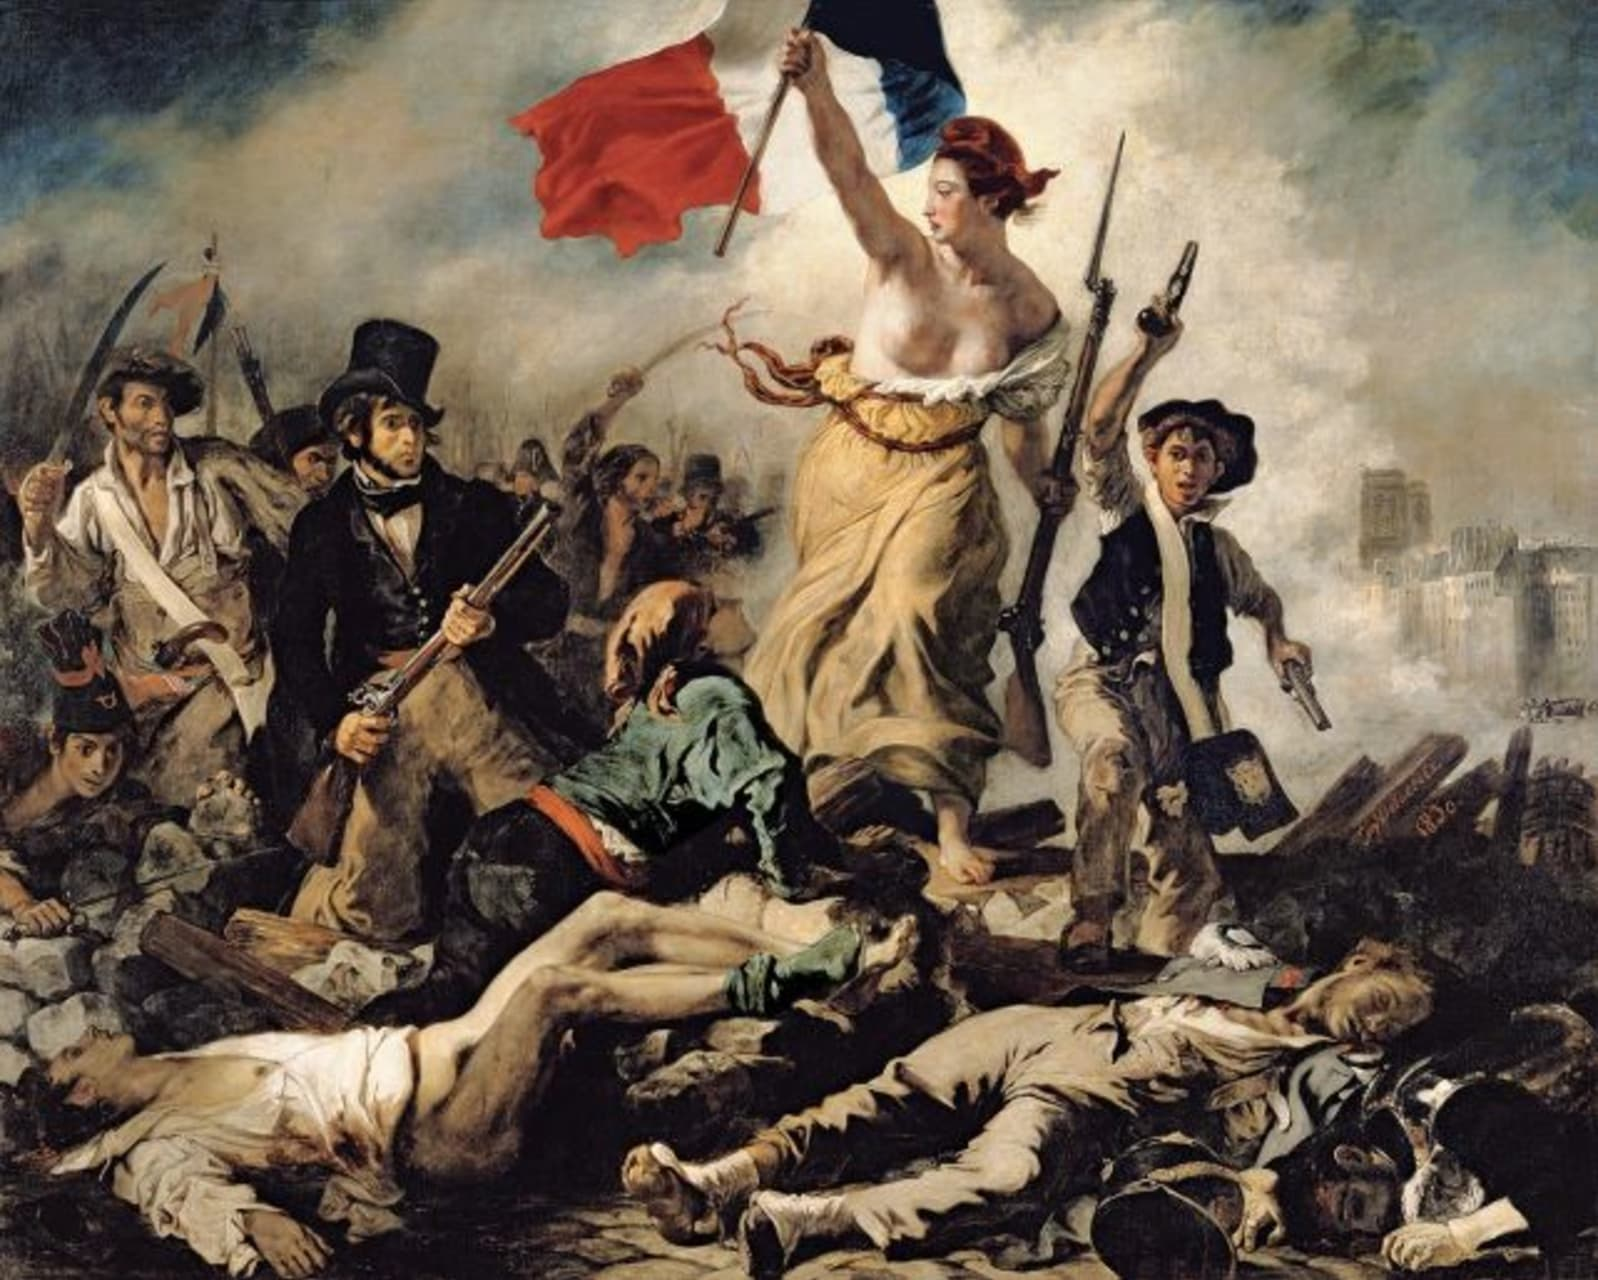 Paris - Louvre: The French Masters